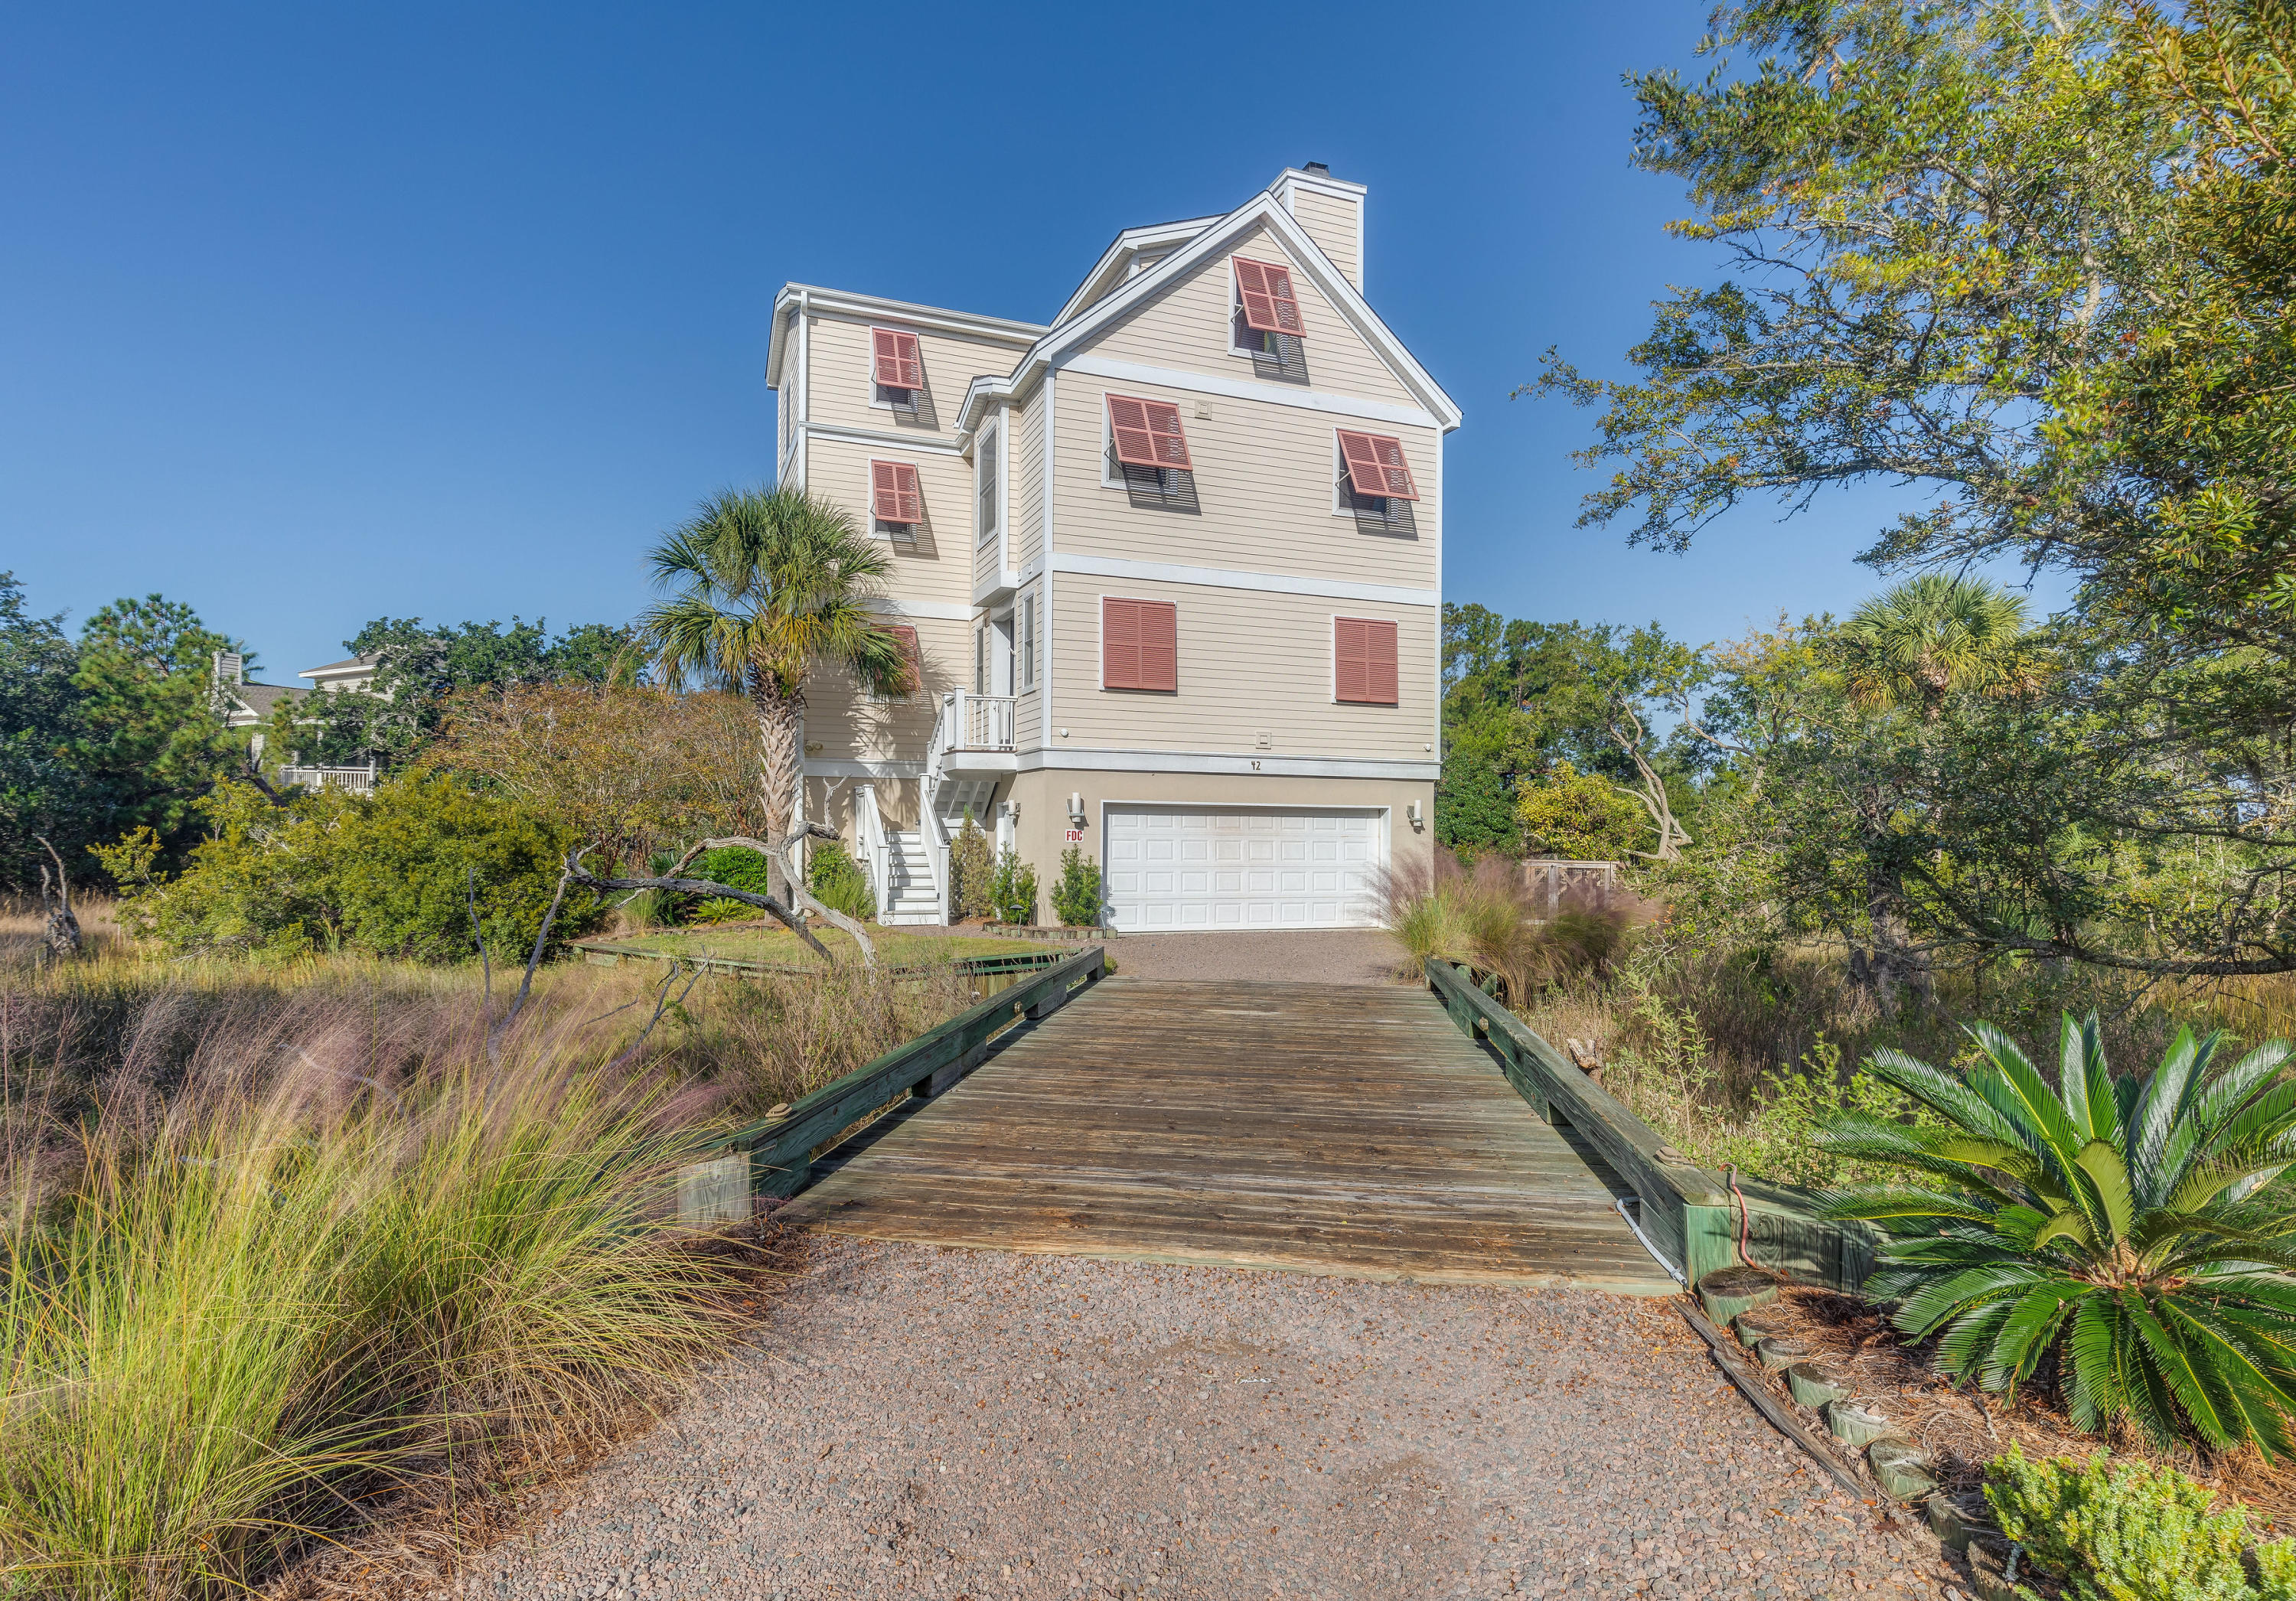 Wild Dunes Homes For Sale - 42 Seagrass, Isle of Palms, SC - 8